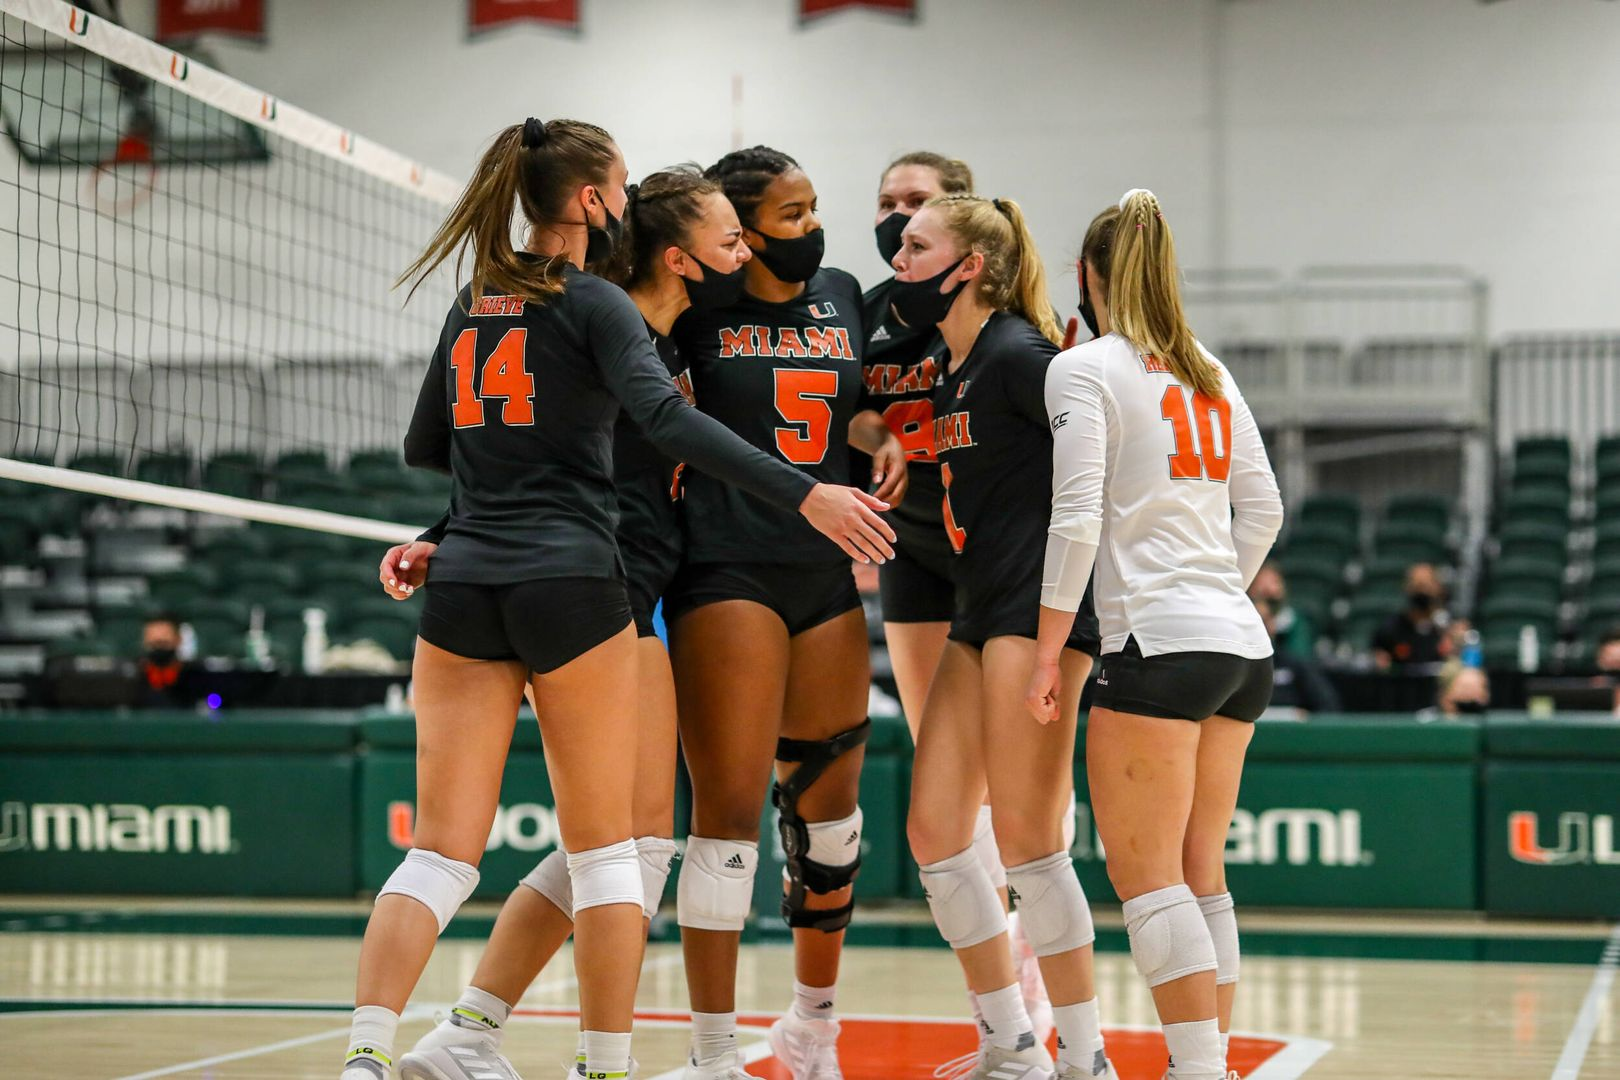 Canes Sweep Cavaliers in Back-to-Back Matches